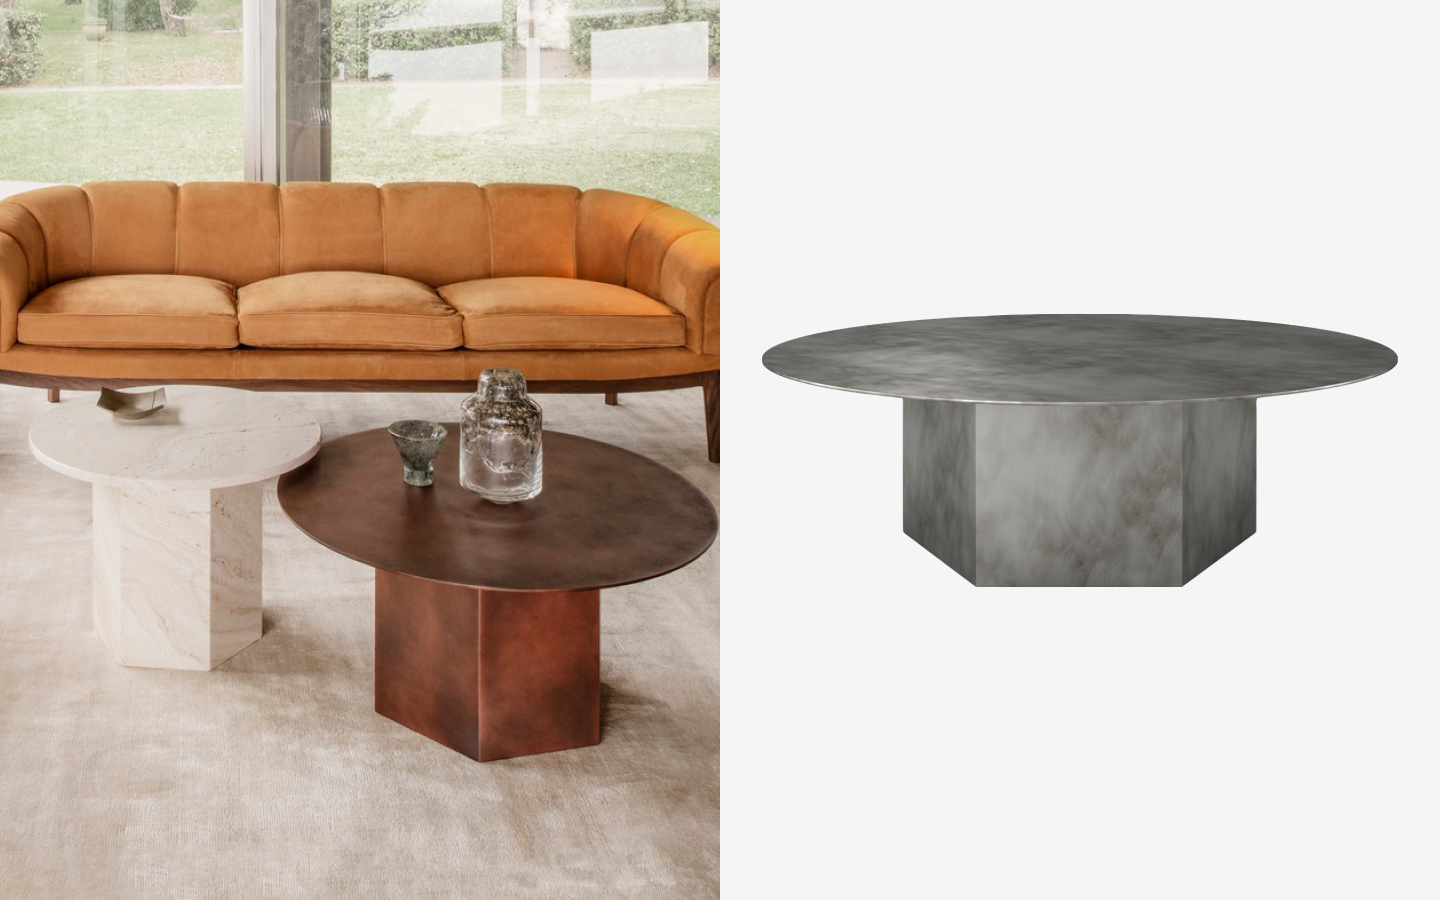 Round metal side table with hexagonal base